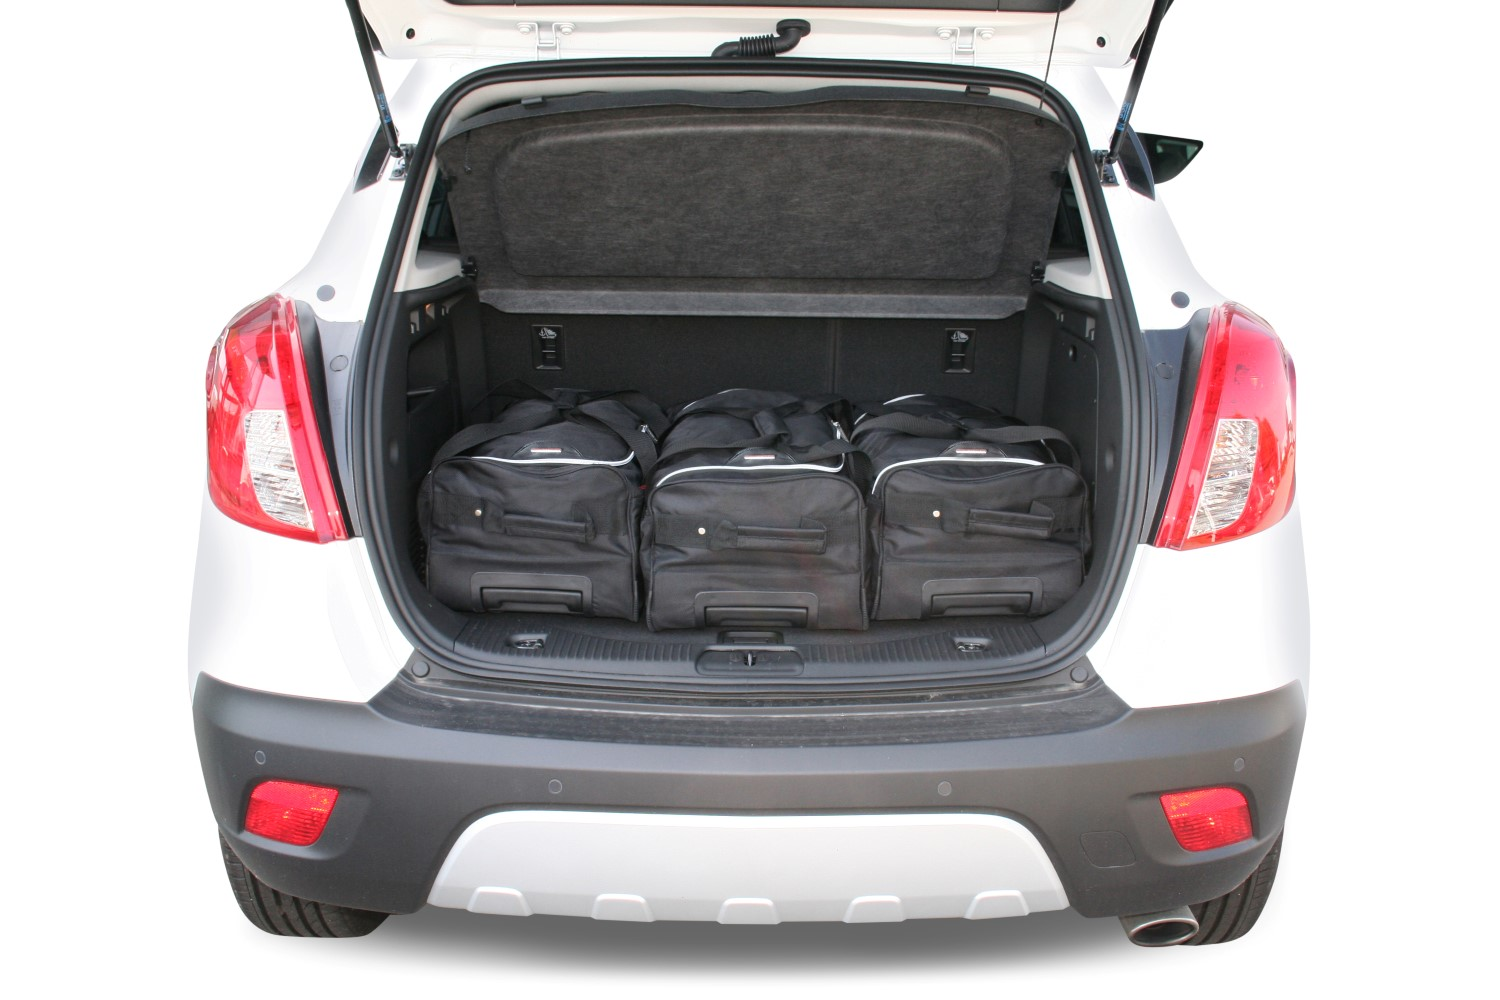 mokka x opel mokka mokka x 2012 pr sent car bags set de sacs de voyage. Black Bedroom Furniture Sets. Home Design Ideas